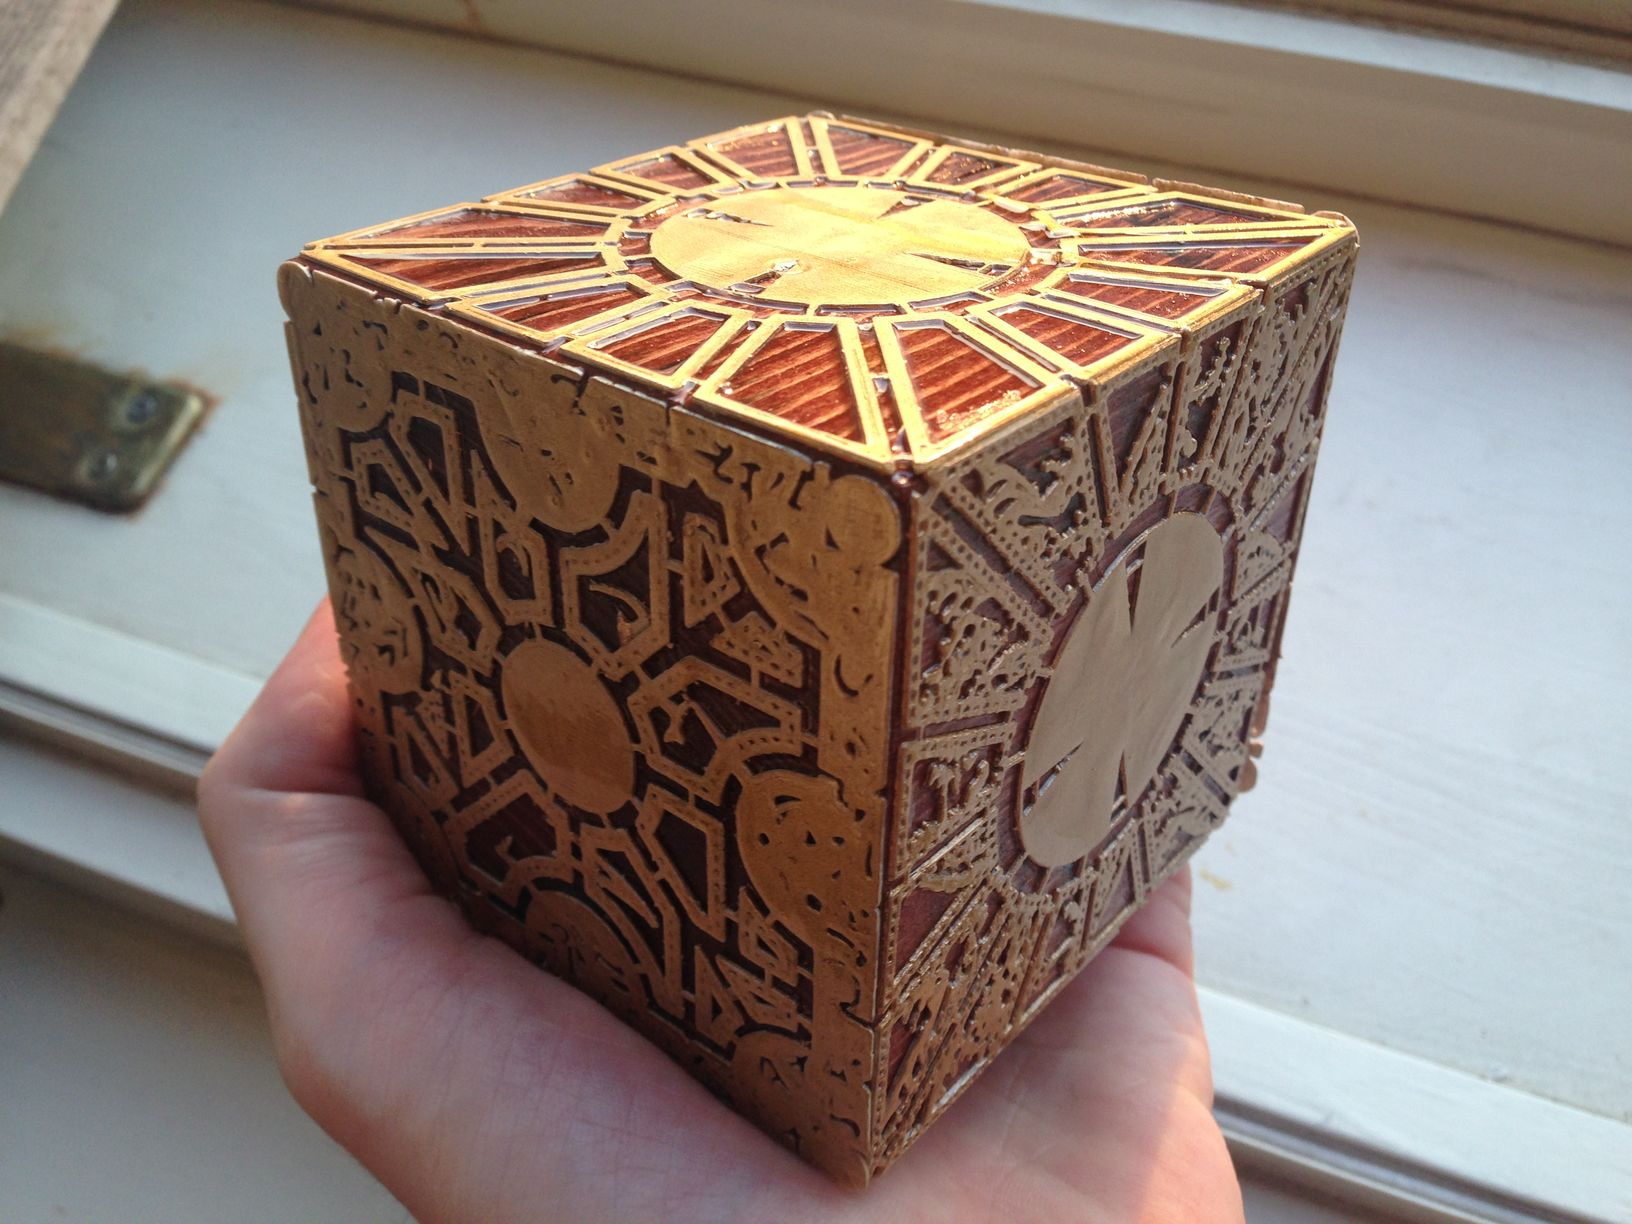 15.jpg Download free STL file The Lament Configuration (Hellraiser puzzle box) • 3D printable template, Mendelssohn